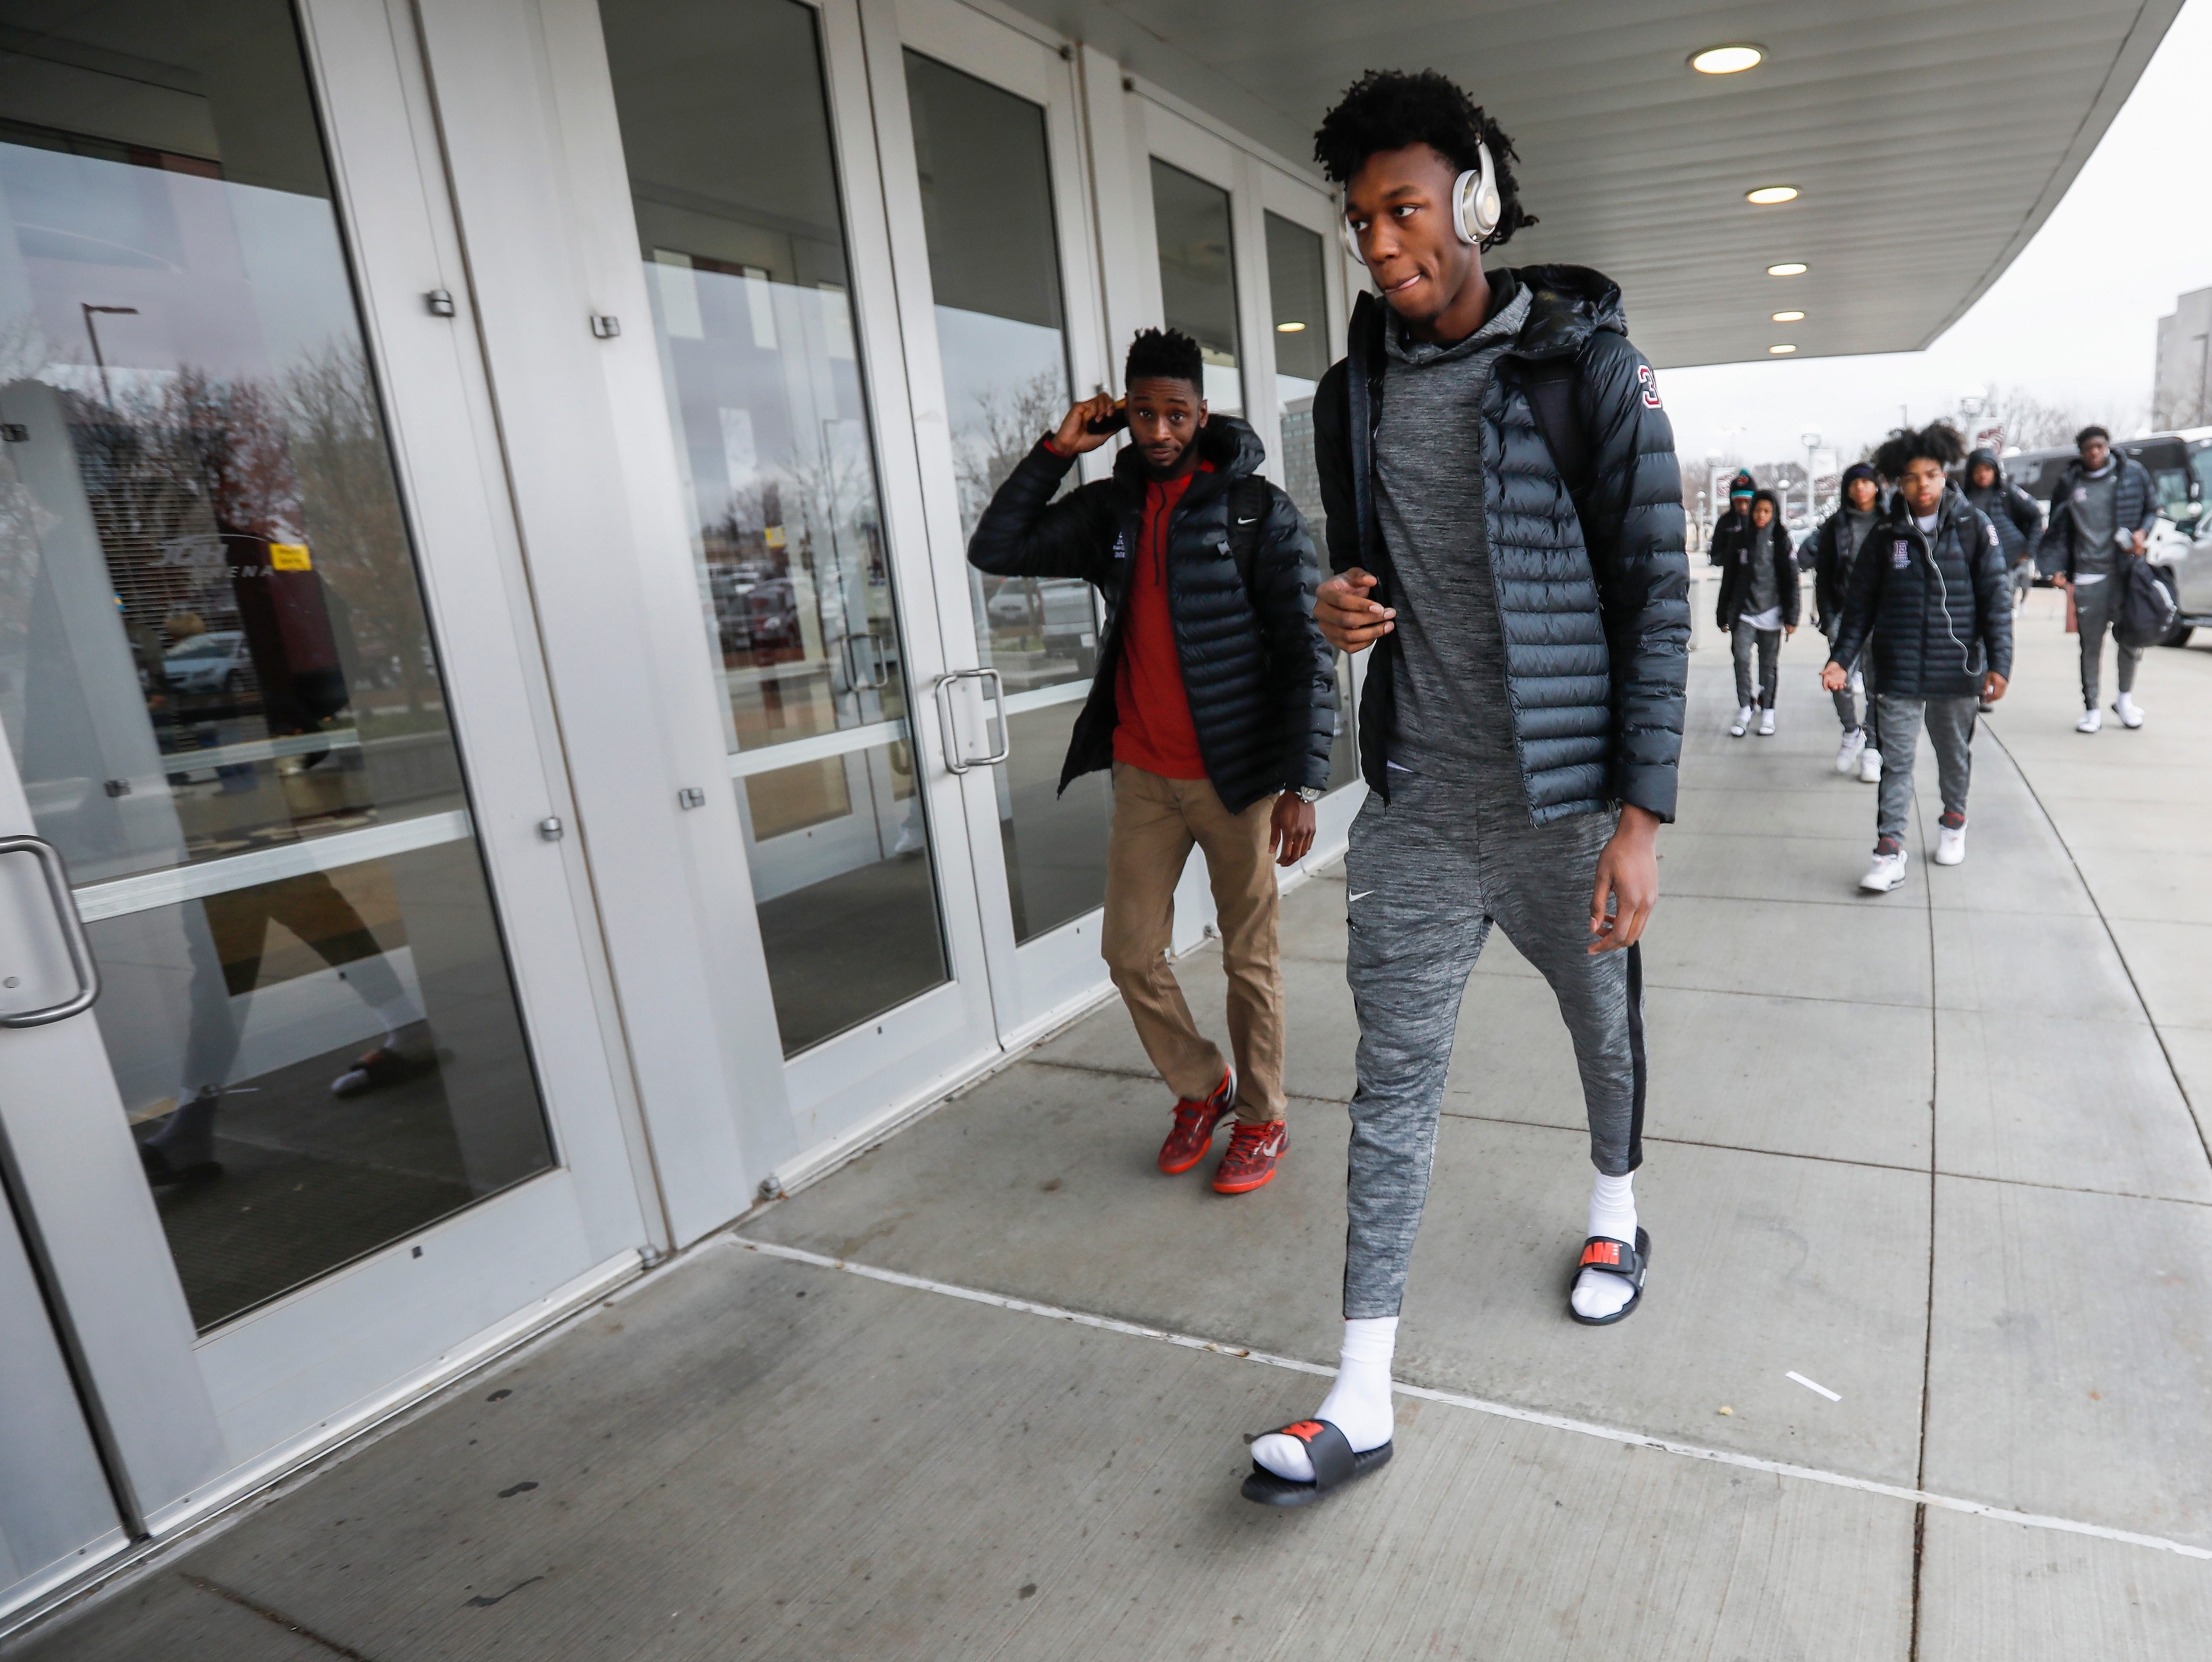 James Wiseman, center left, of Memphis East High School, walks into JQH Arena for the Bass Pro Shops Tournament of Champions on Thursday, Jan. 17, 2019.